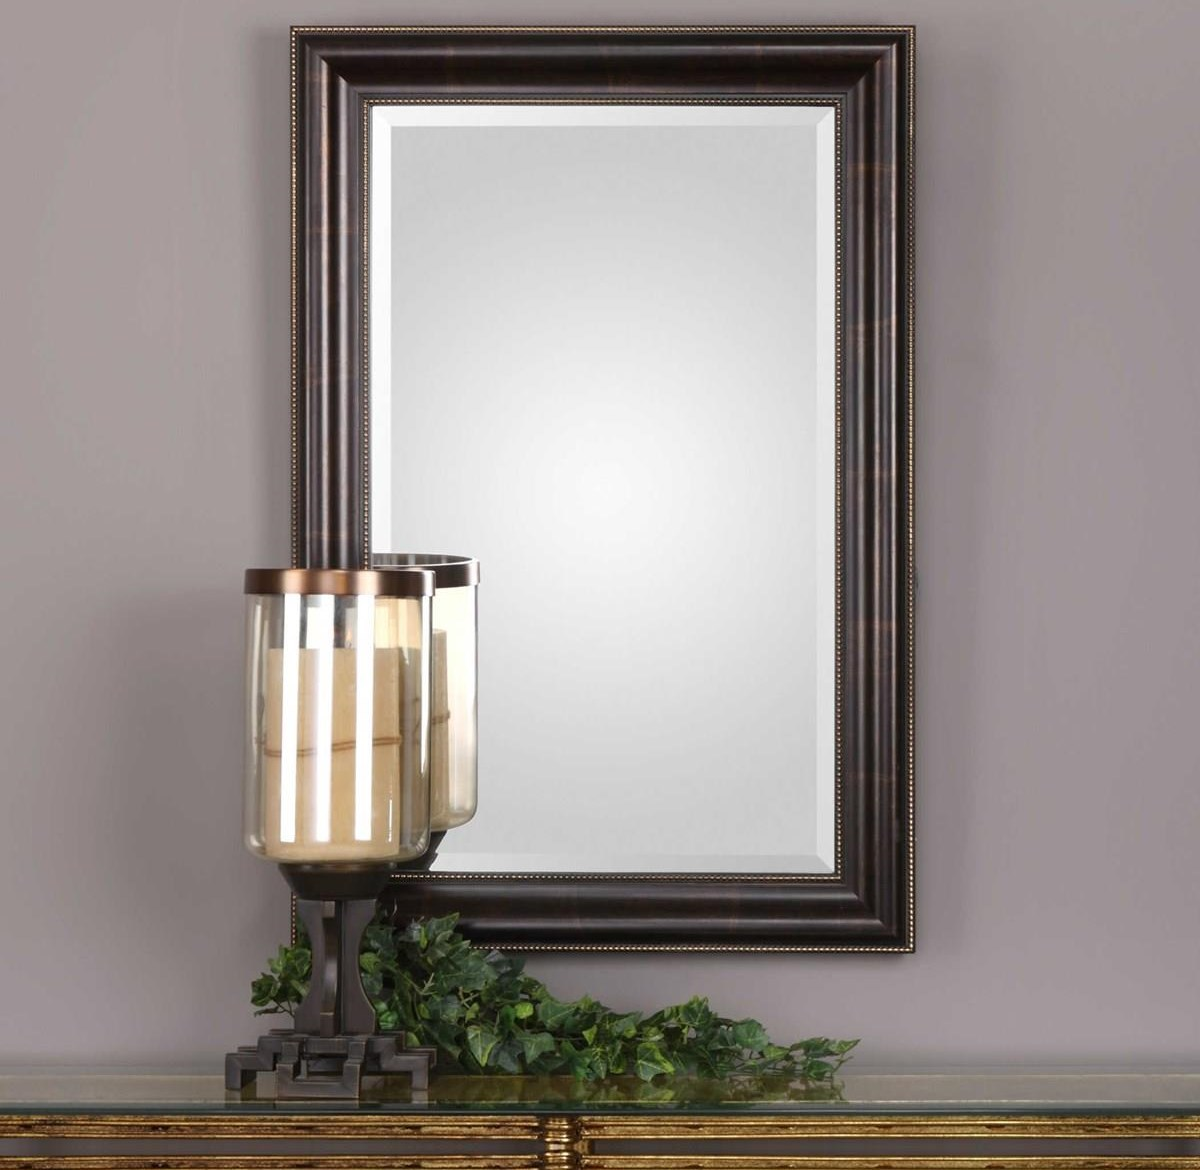 Mirrors LUNA WALL MIRROR by Unique at Walker's Furniture